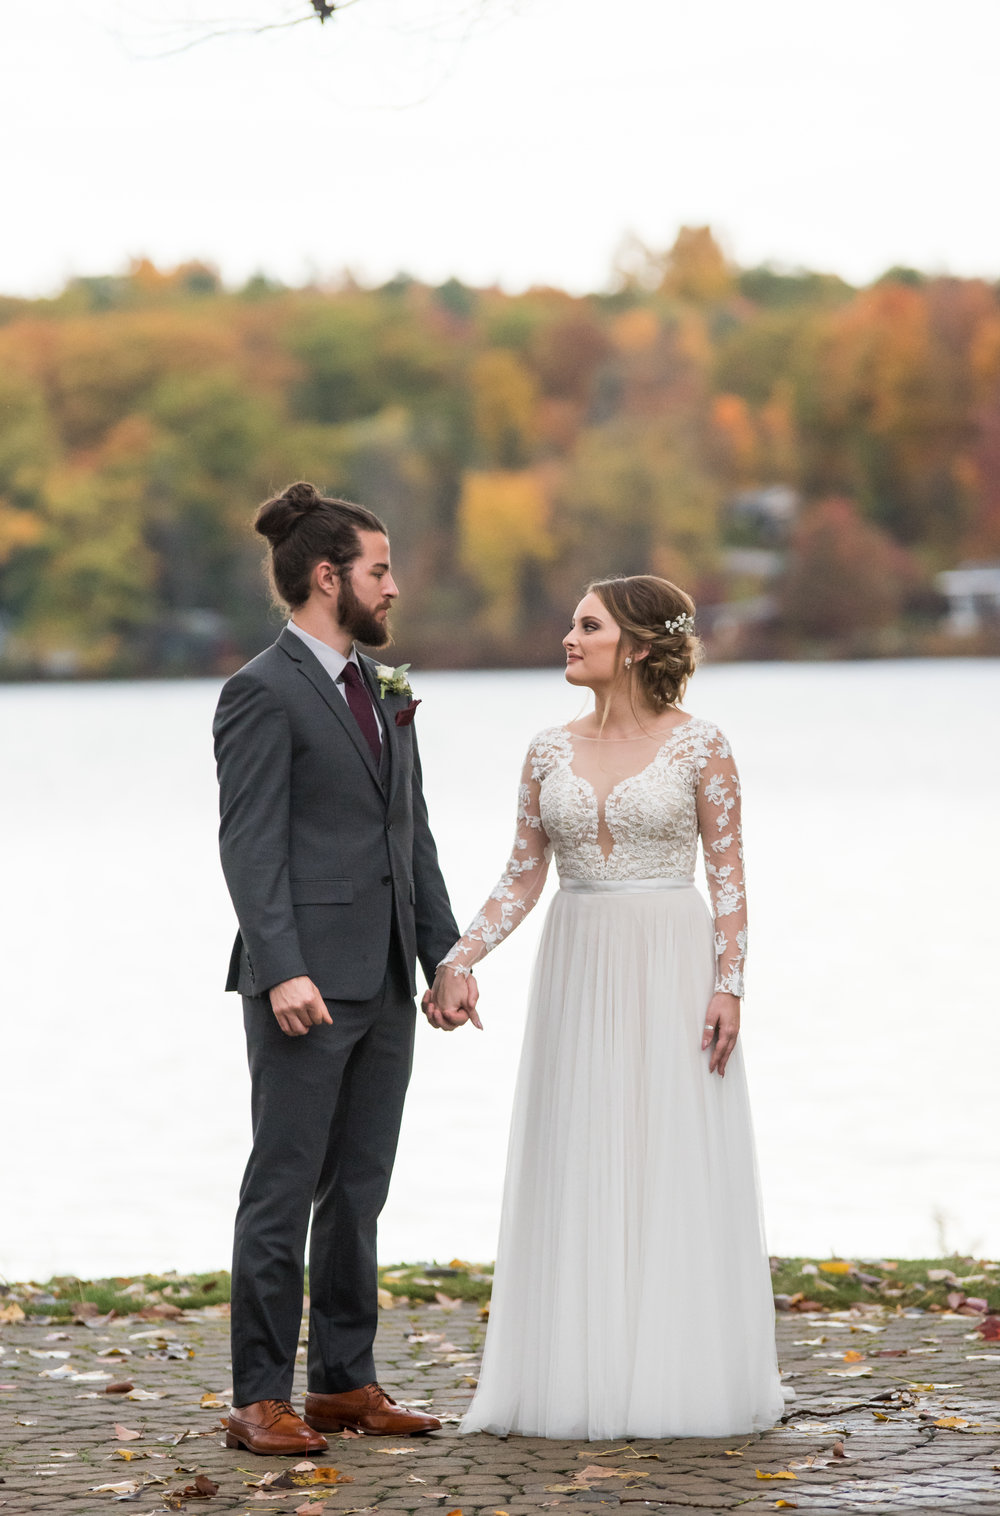 love--old-daley-on-crooked-lake-albany-ny-wedding-ym-photography